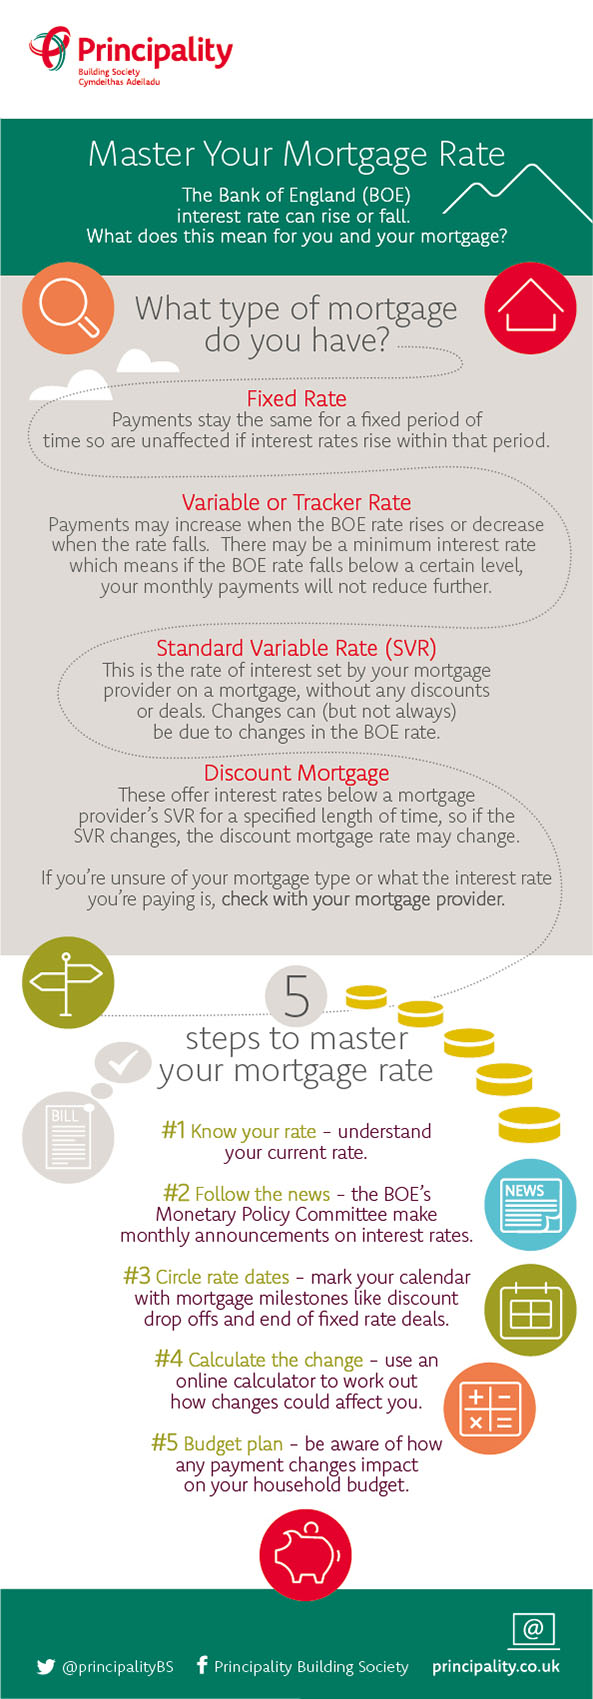 Master your Mortgage Rate Infographic